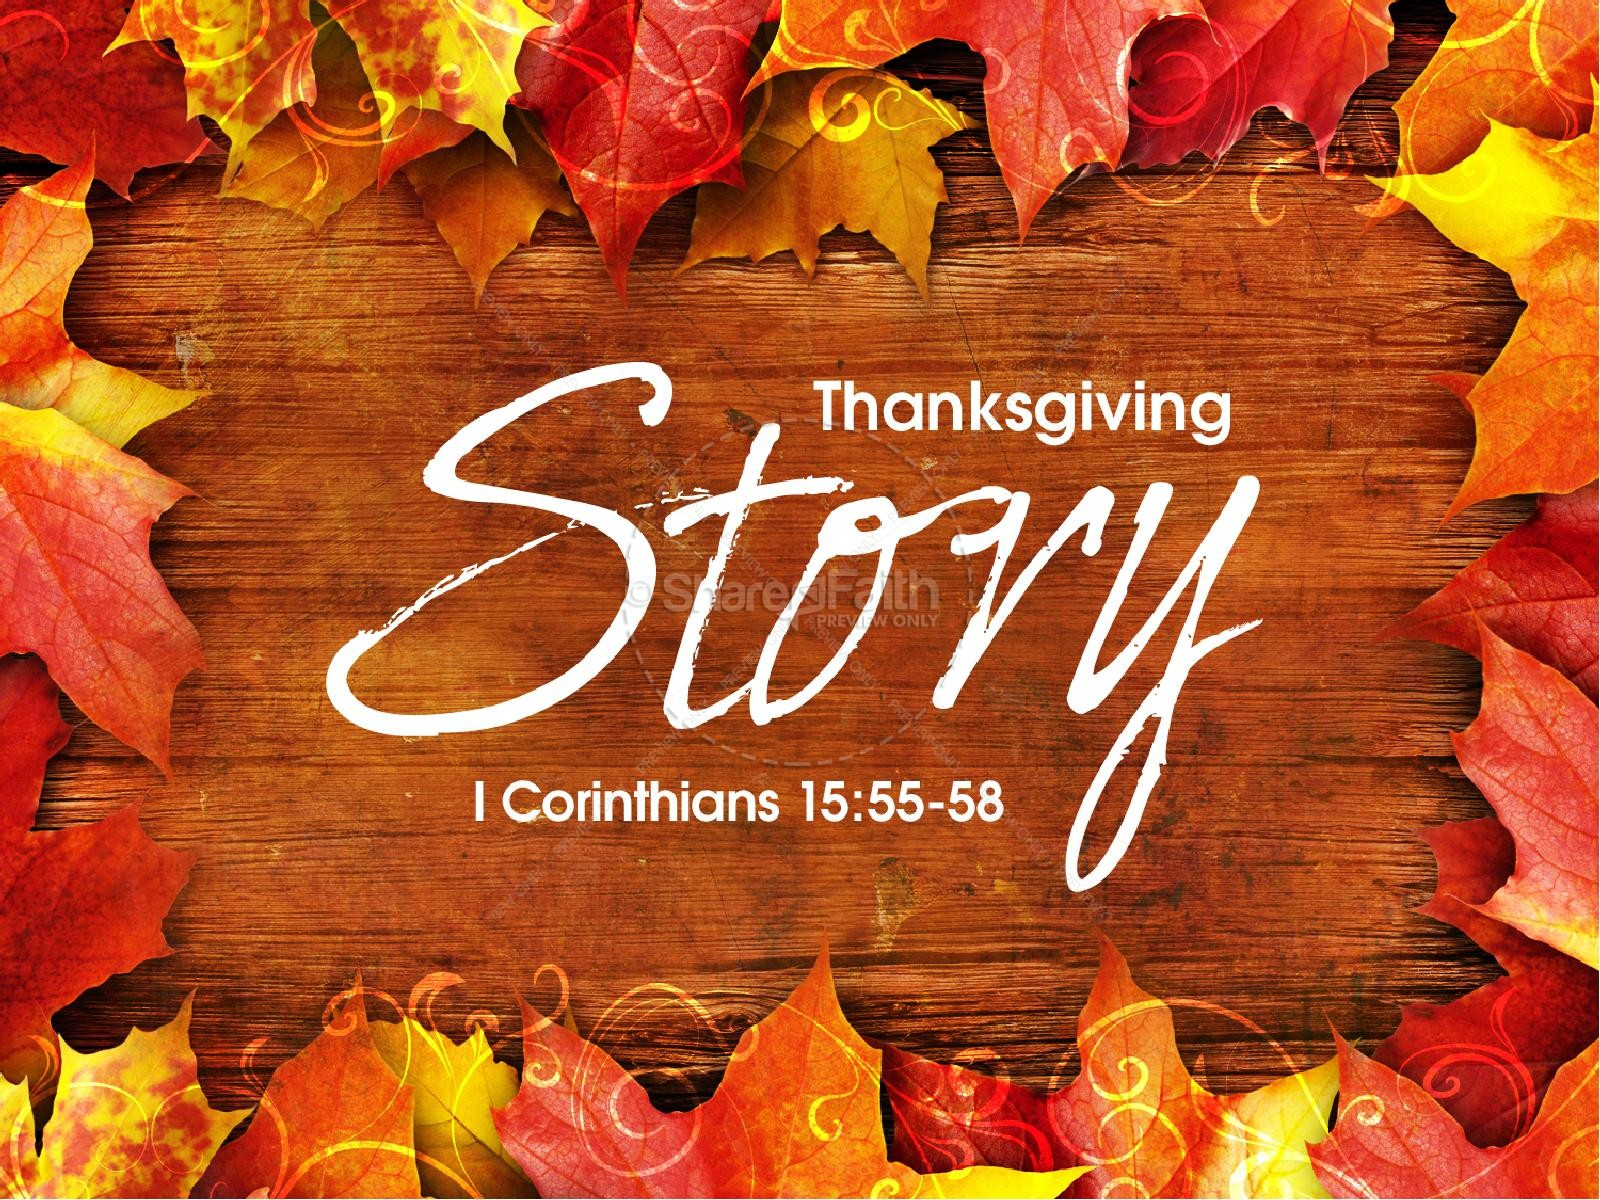 Thanksgiving Story Sermon Presentation | slide 1